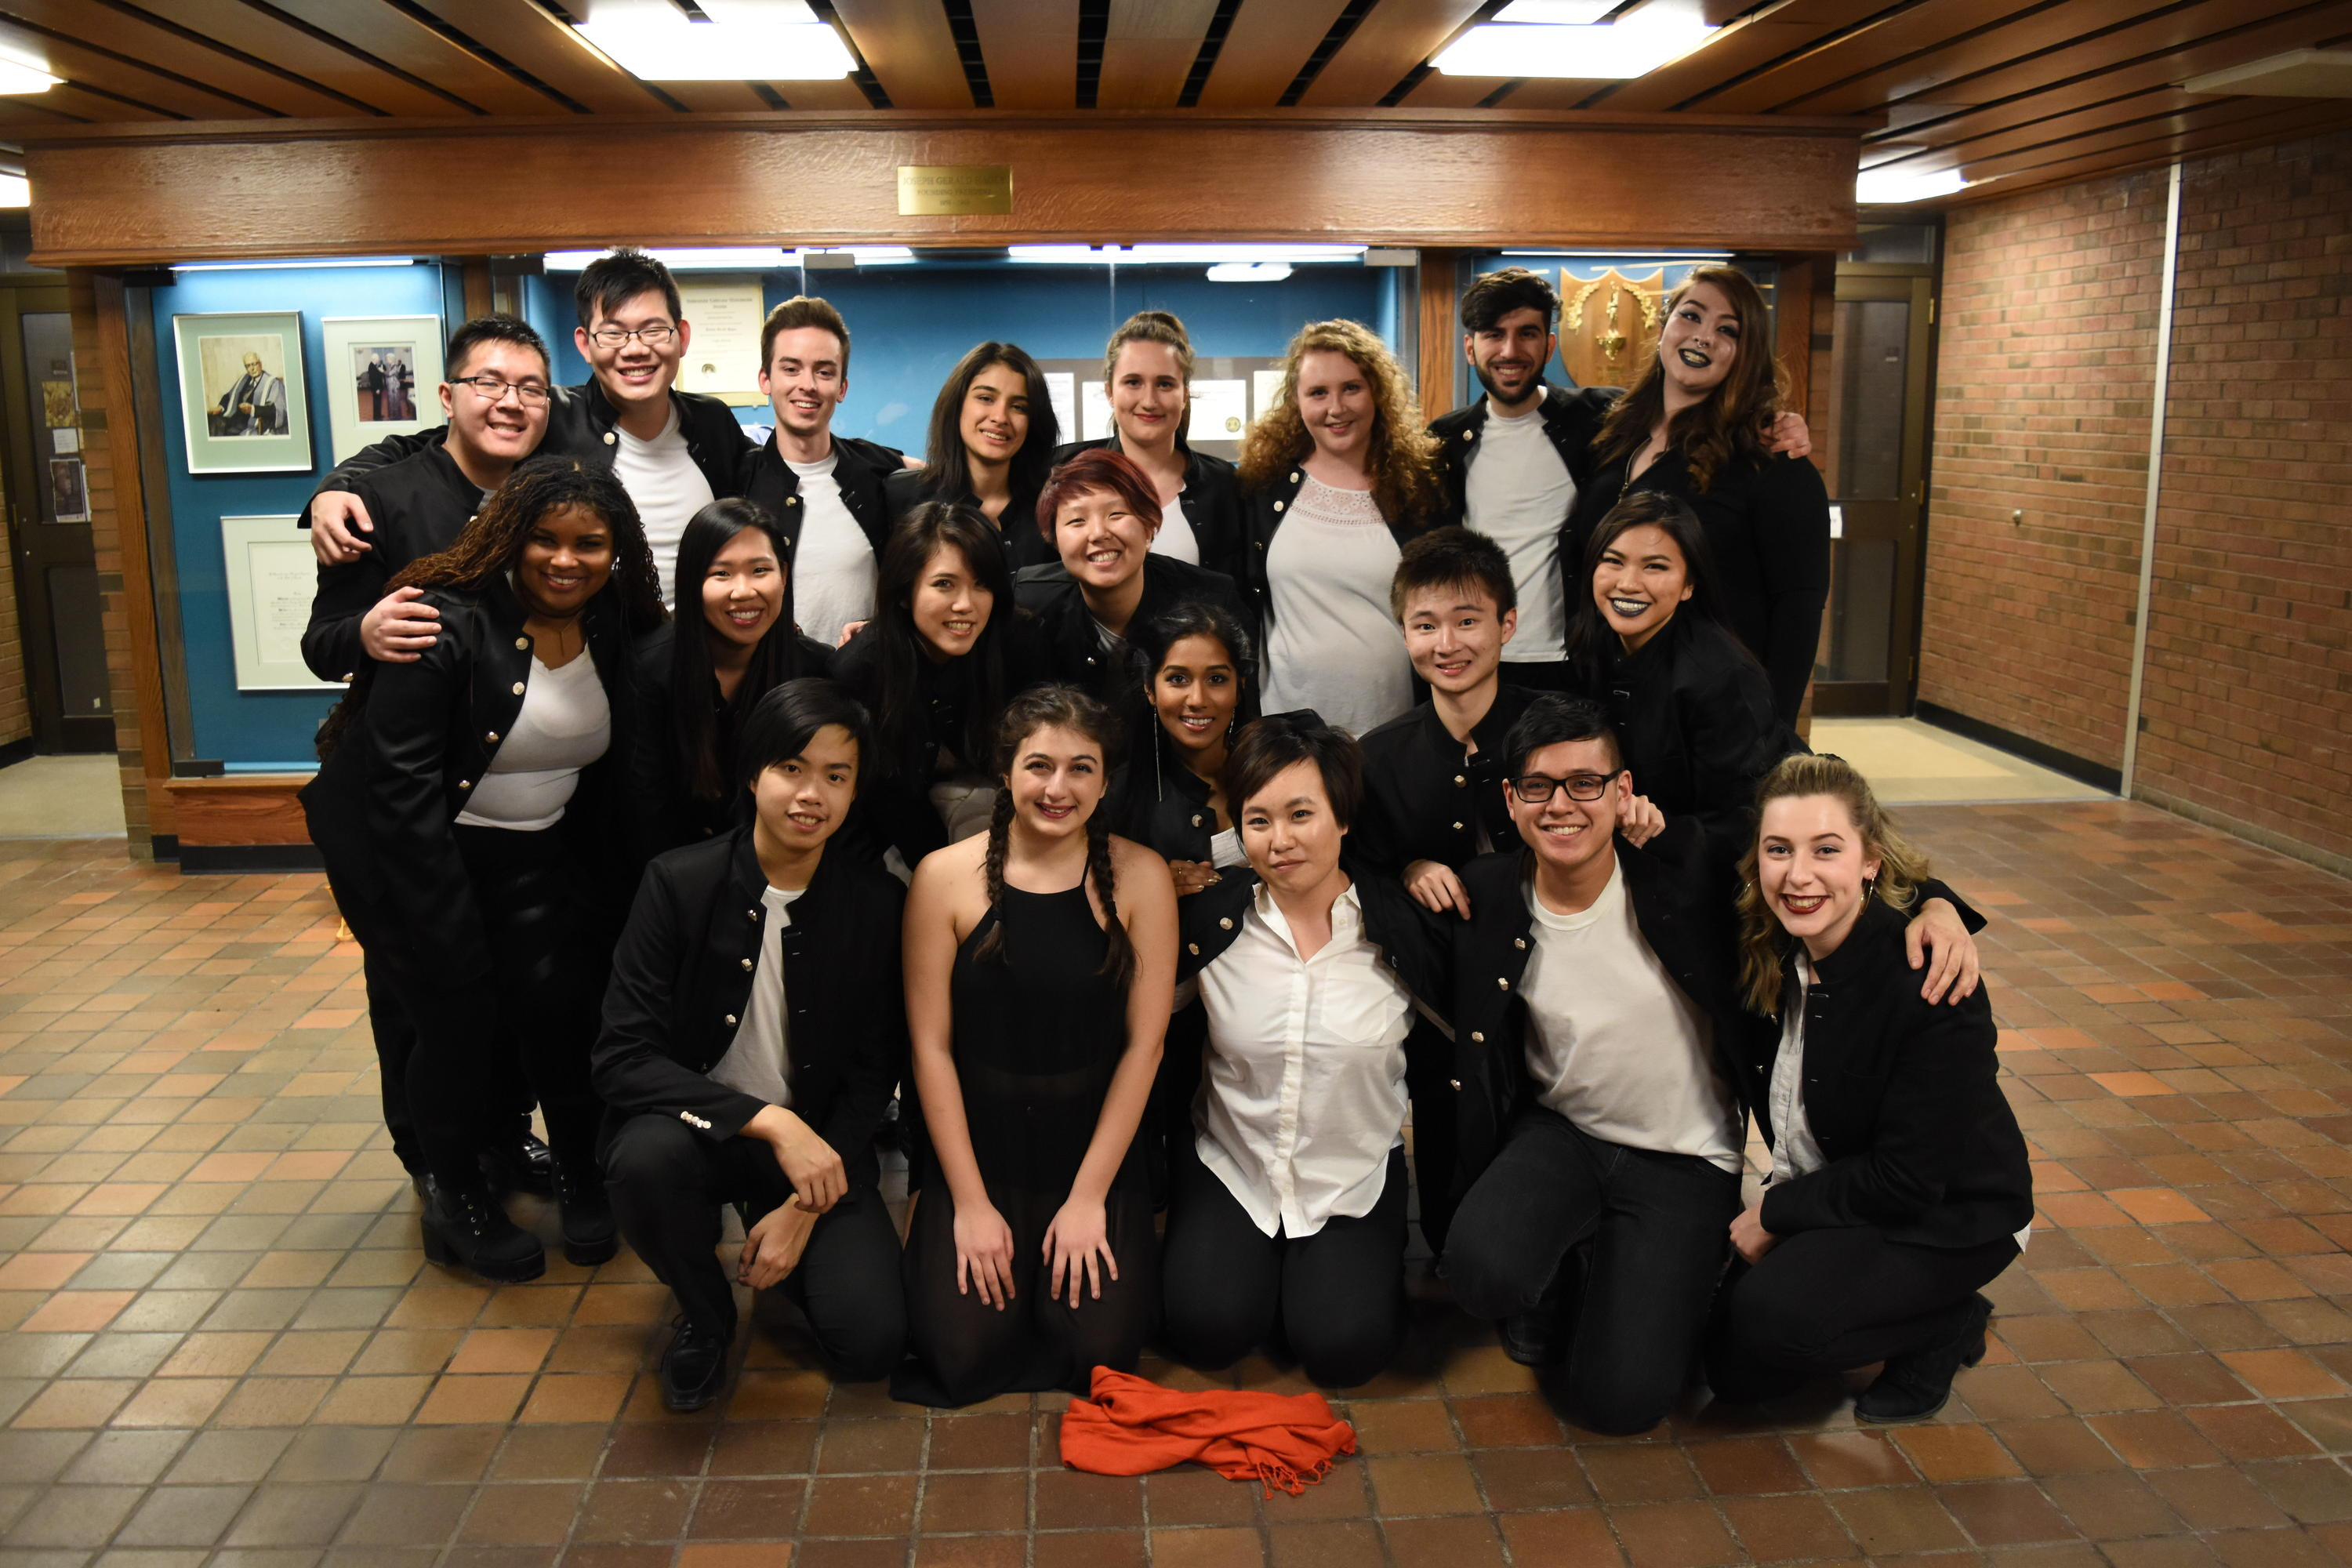 The In Full Colour acapella team pose for a photograph in Hagey Hall